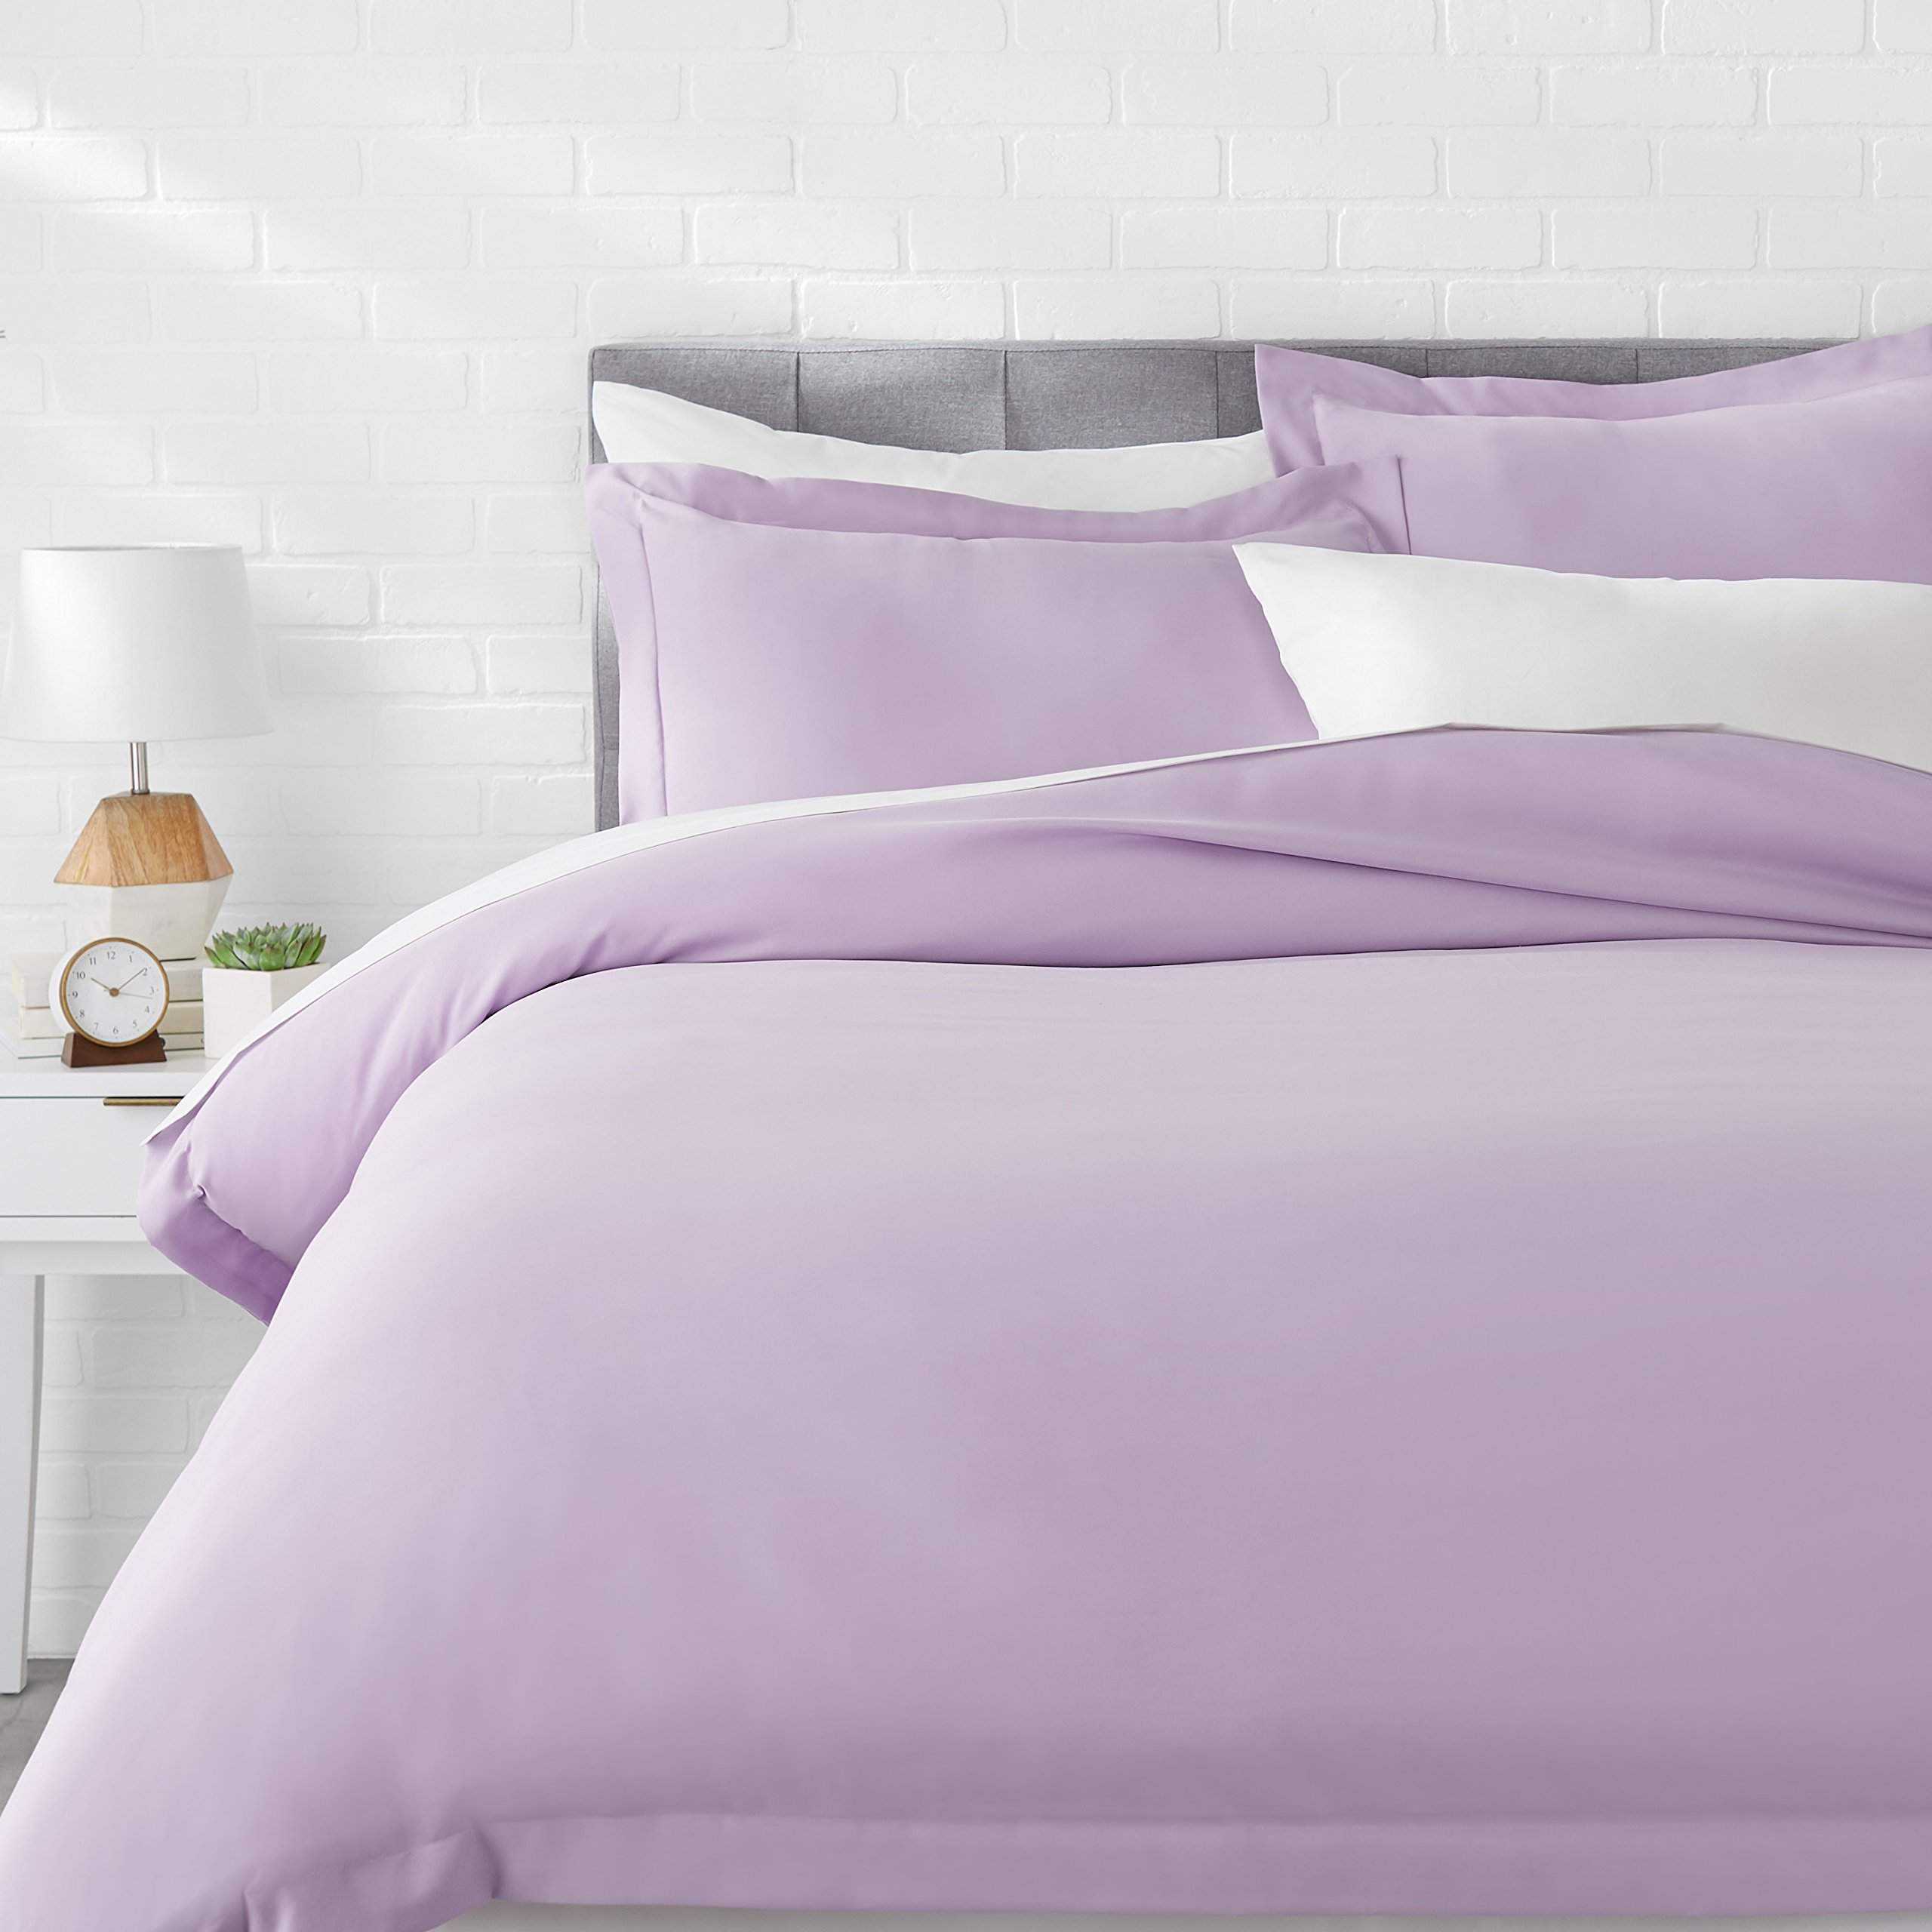 AmazonBasics Microfiber Duvet Cover Set - Full/Queen, Frosted Lavender by AmazonBasics